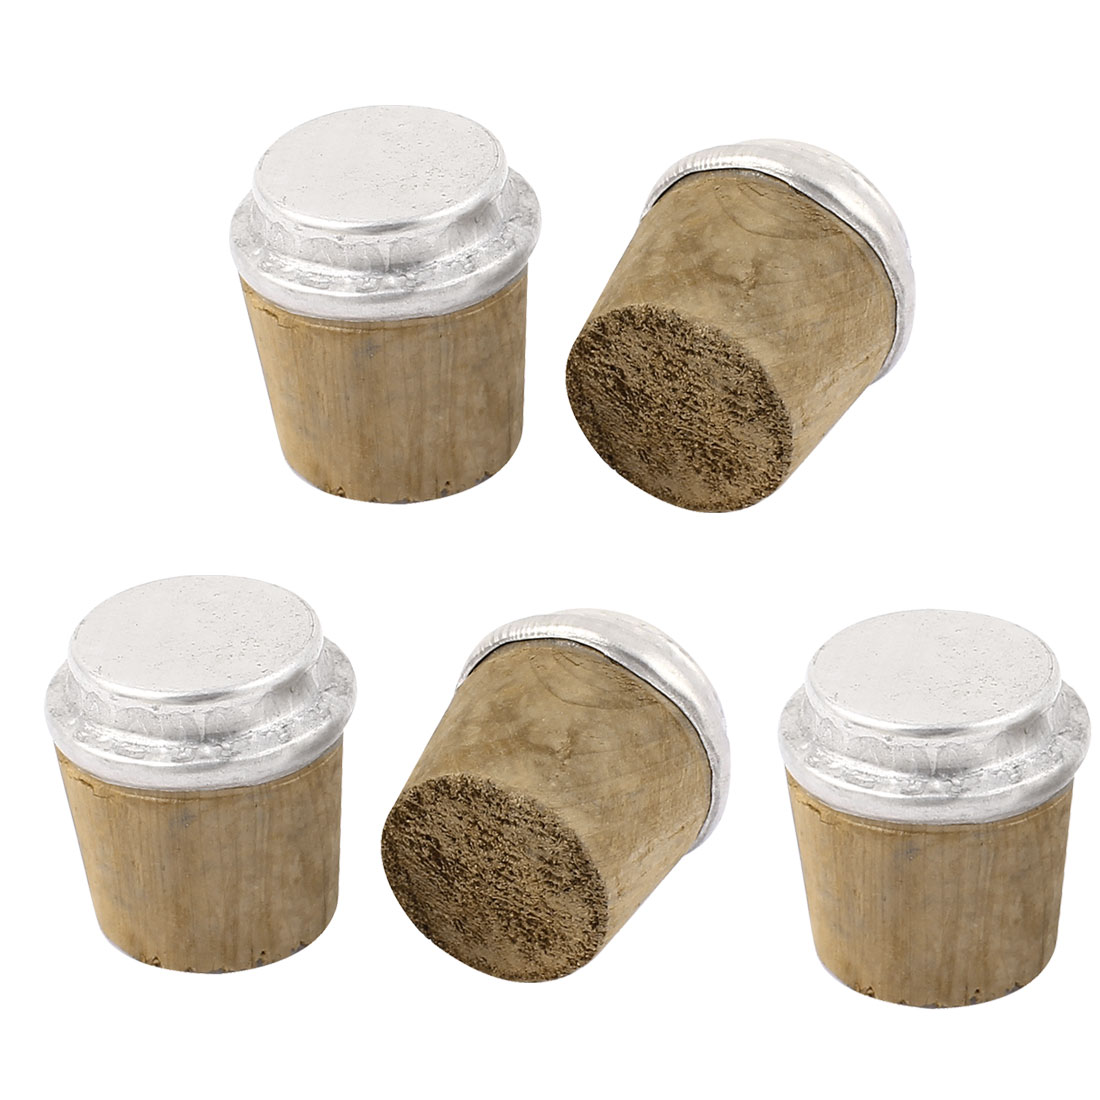 32mm Bottom Dia Wooden Insulating Bottle Cork Stoppers Silver Tone 5pcs